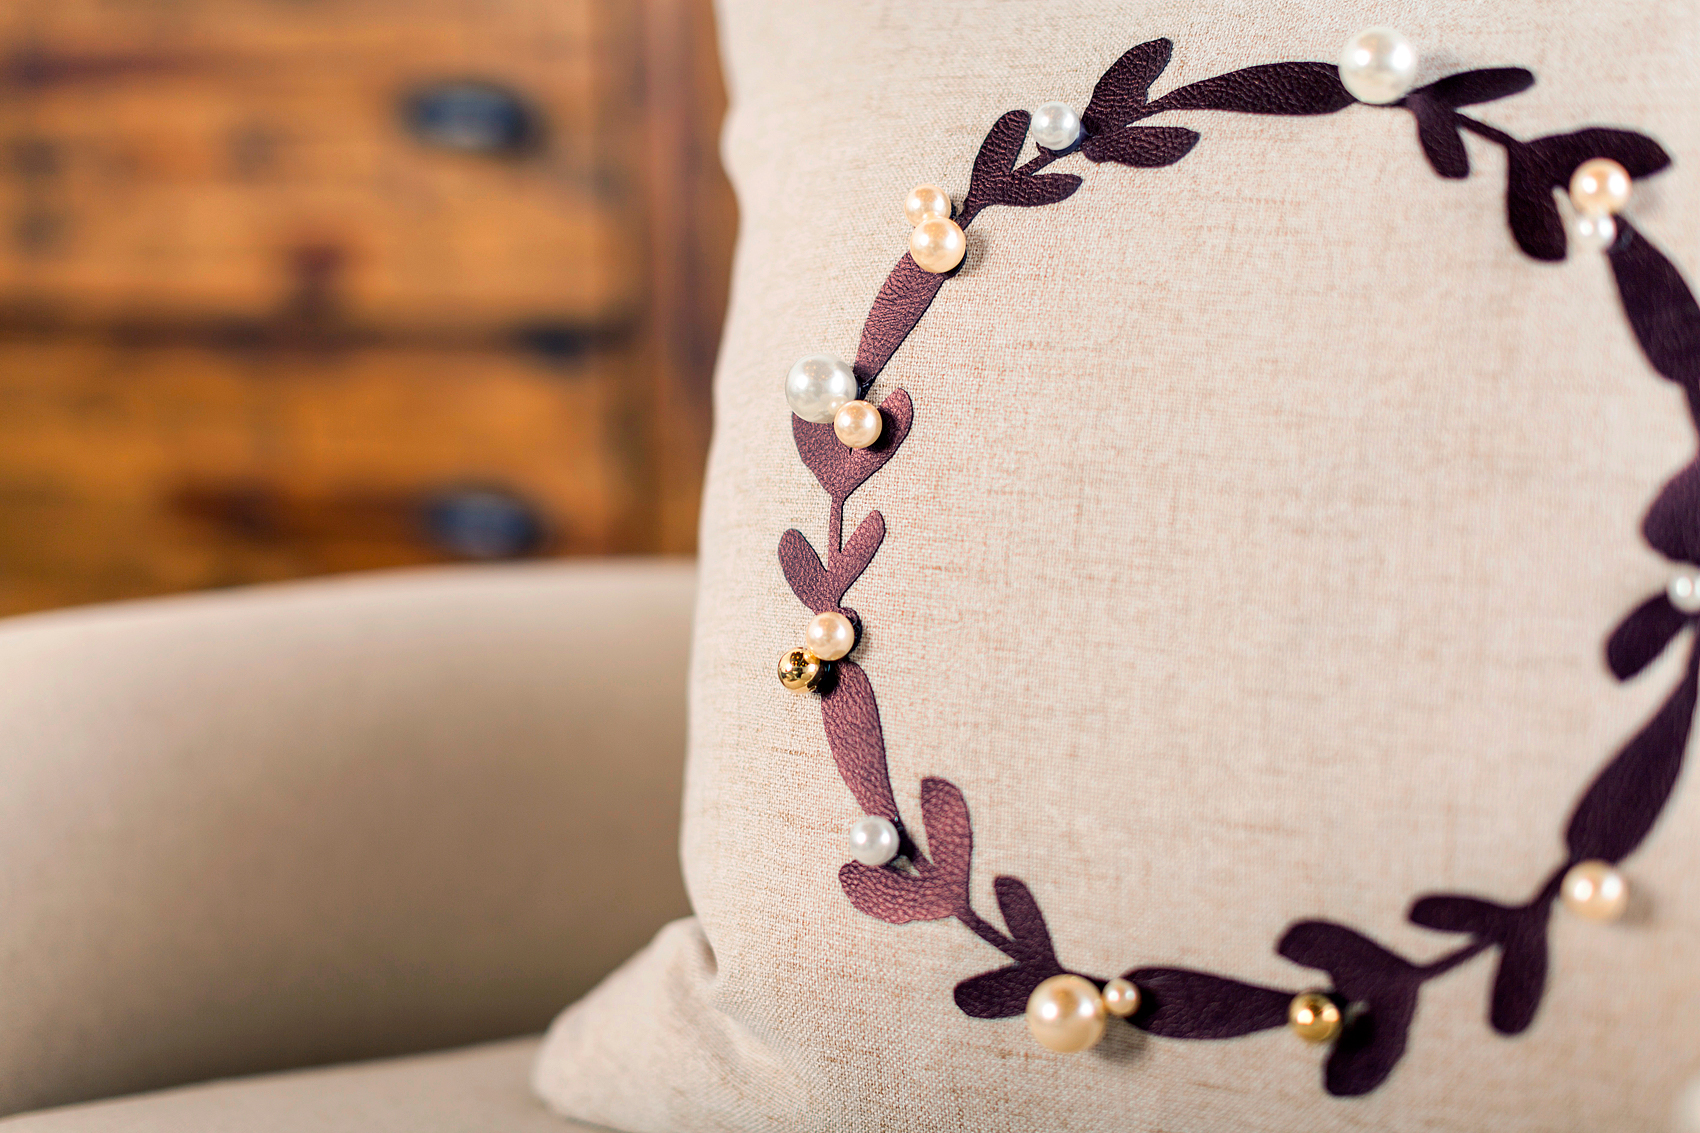 Classic Wreath Pillow created by WhipperBerry using Cricut Faux Leather and the Cricut Explore Air 2